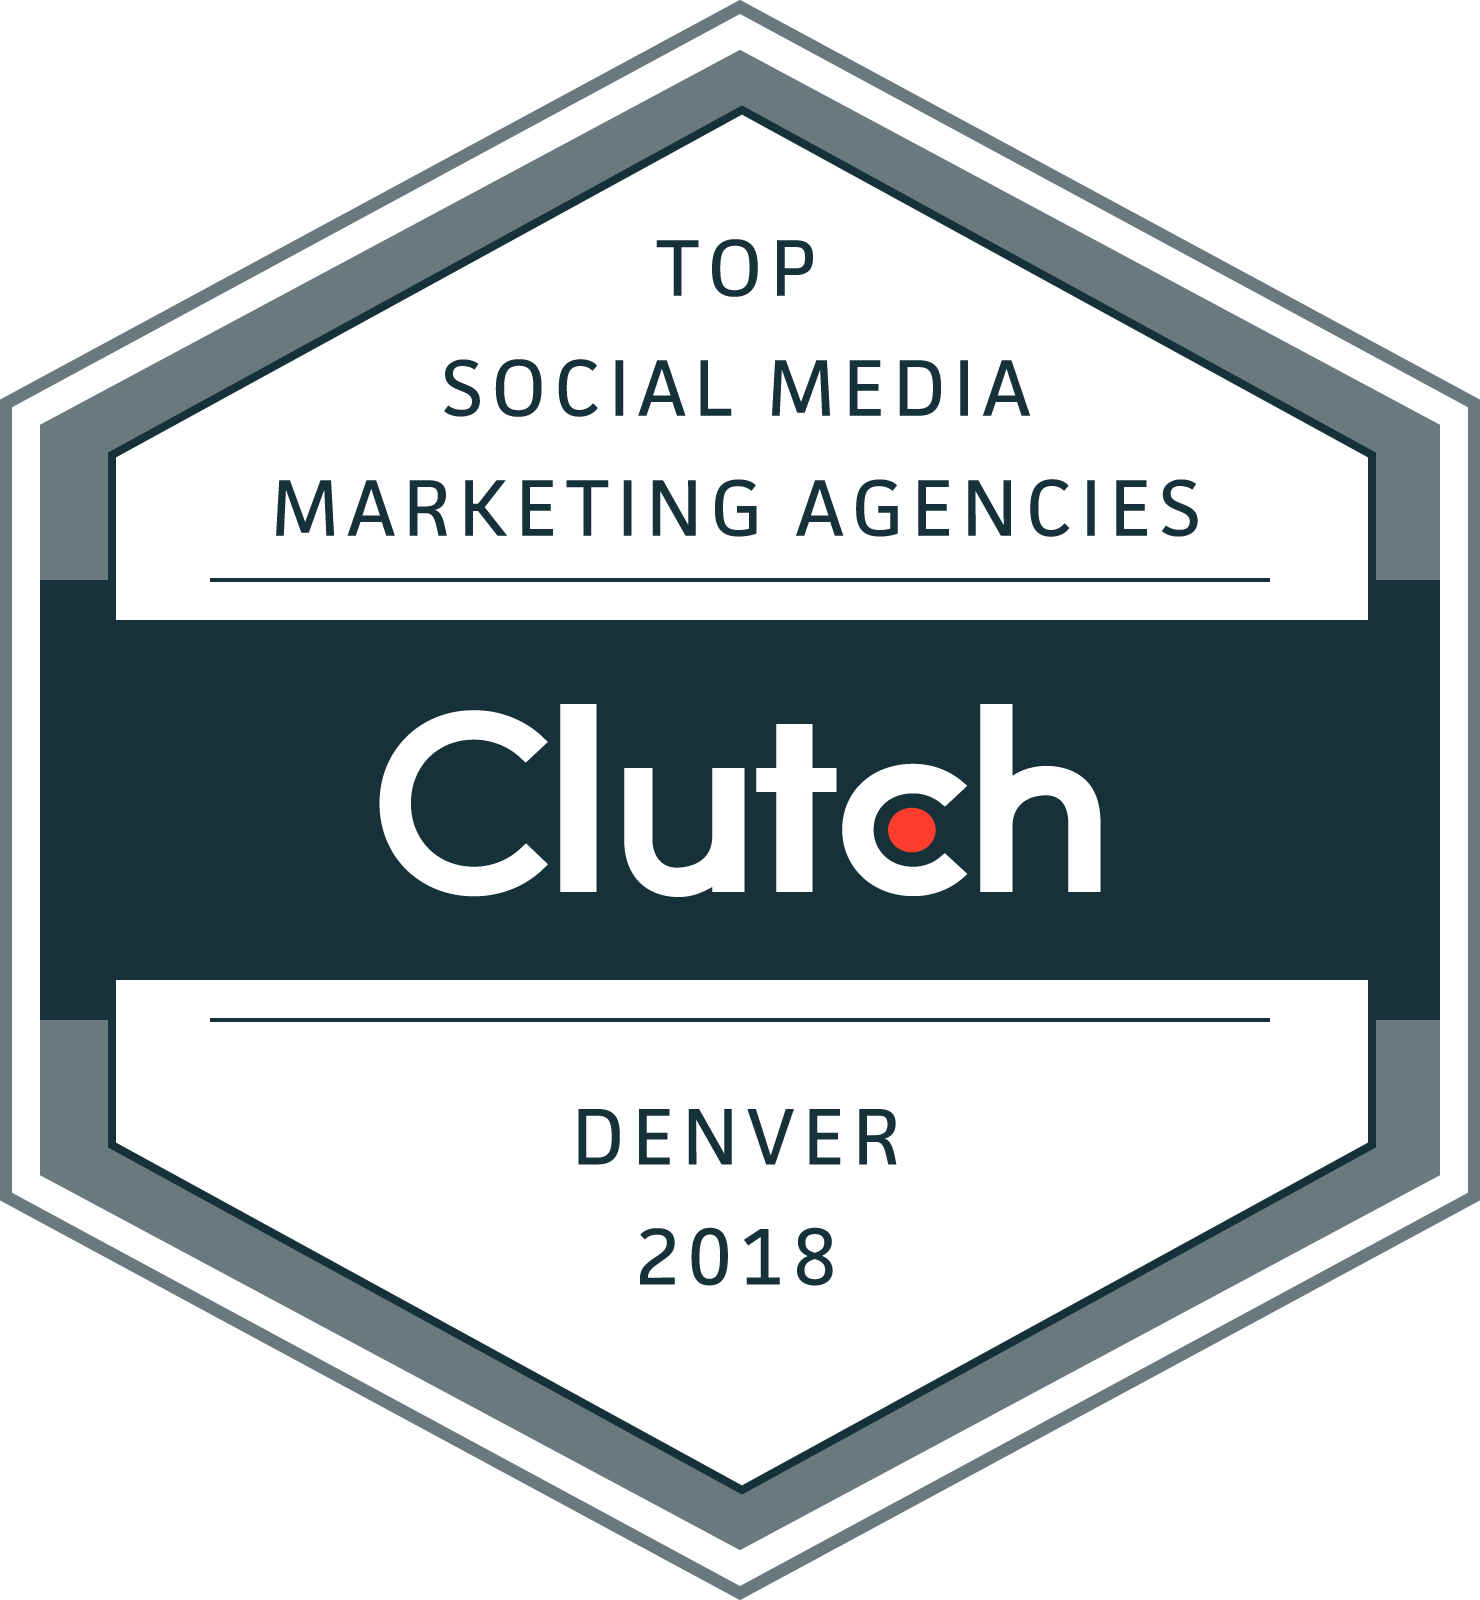 Clutch Top Social Media Marketing Agencies 2018 Award